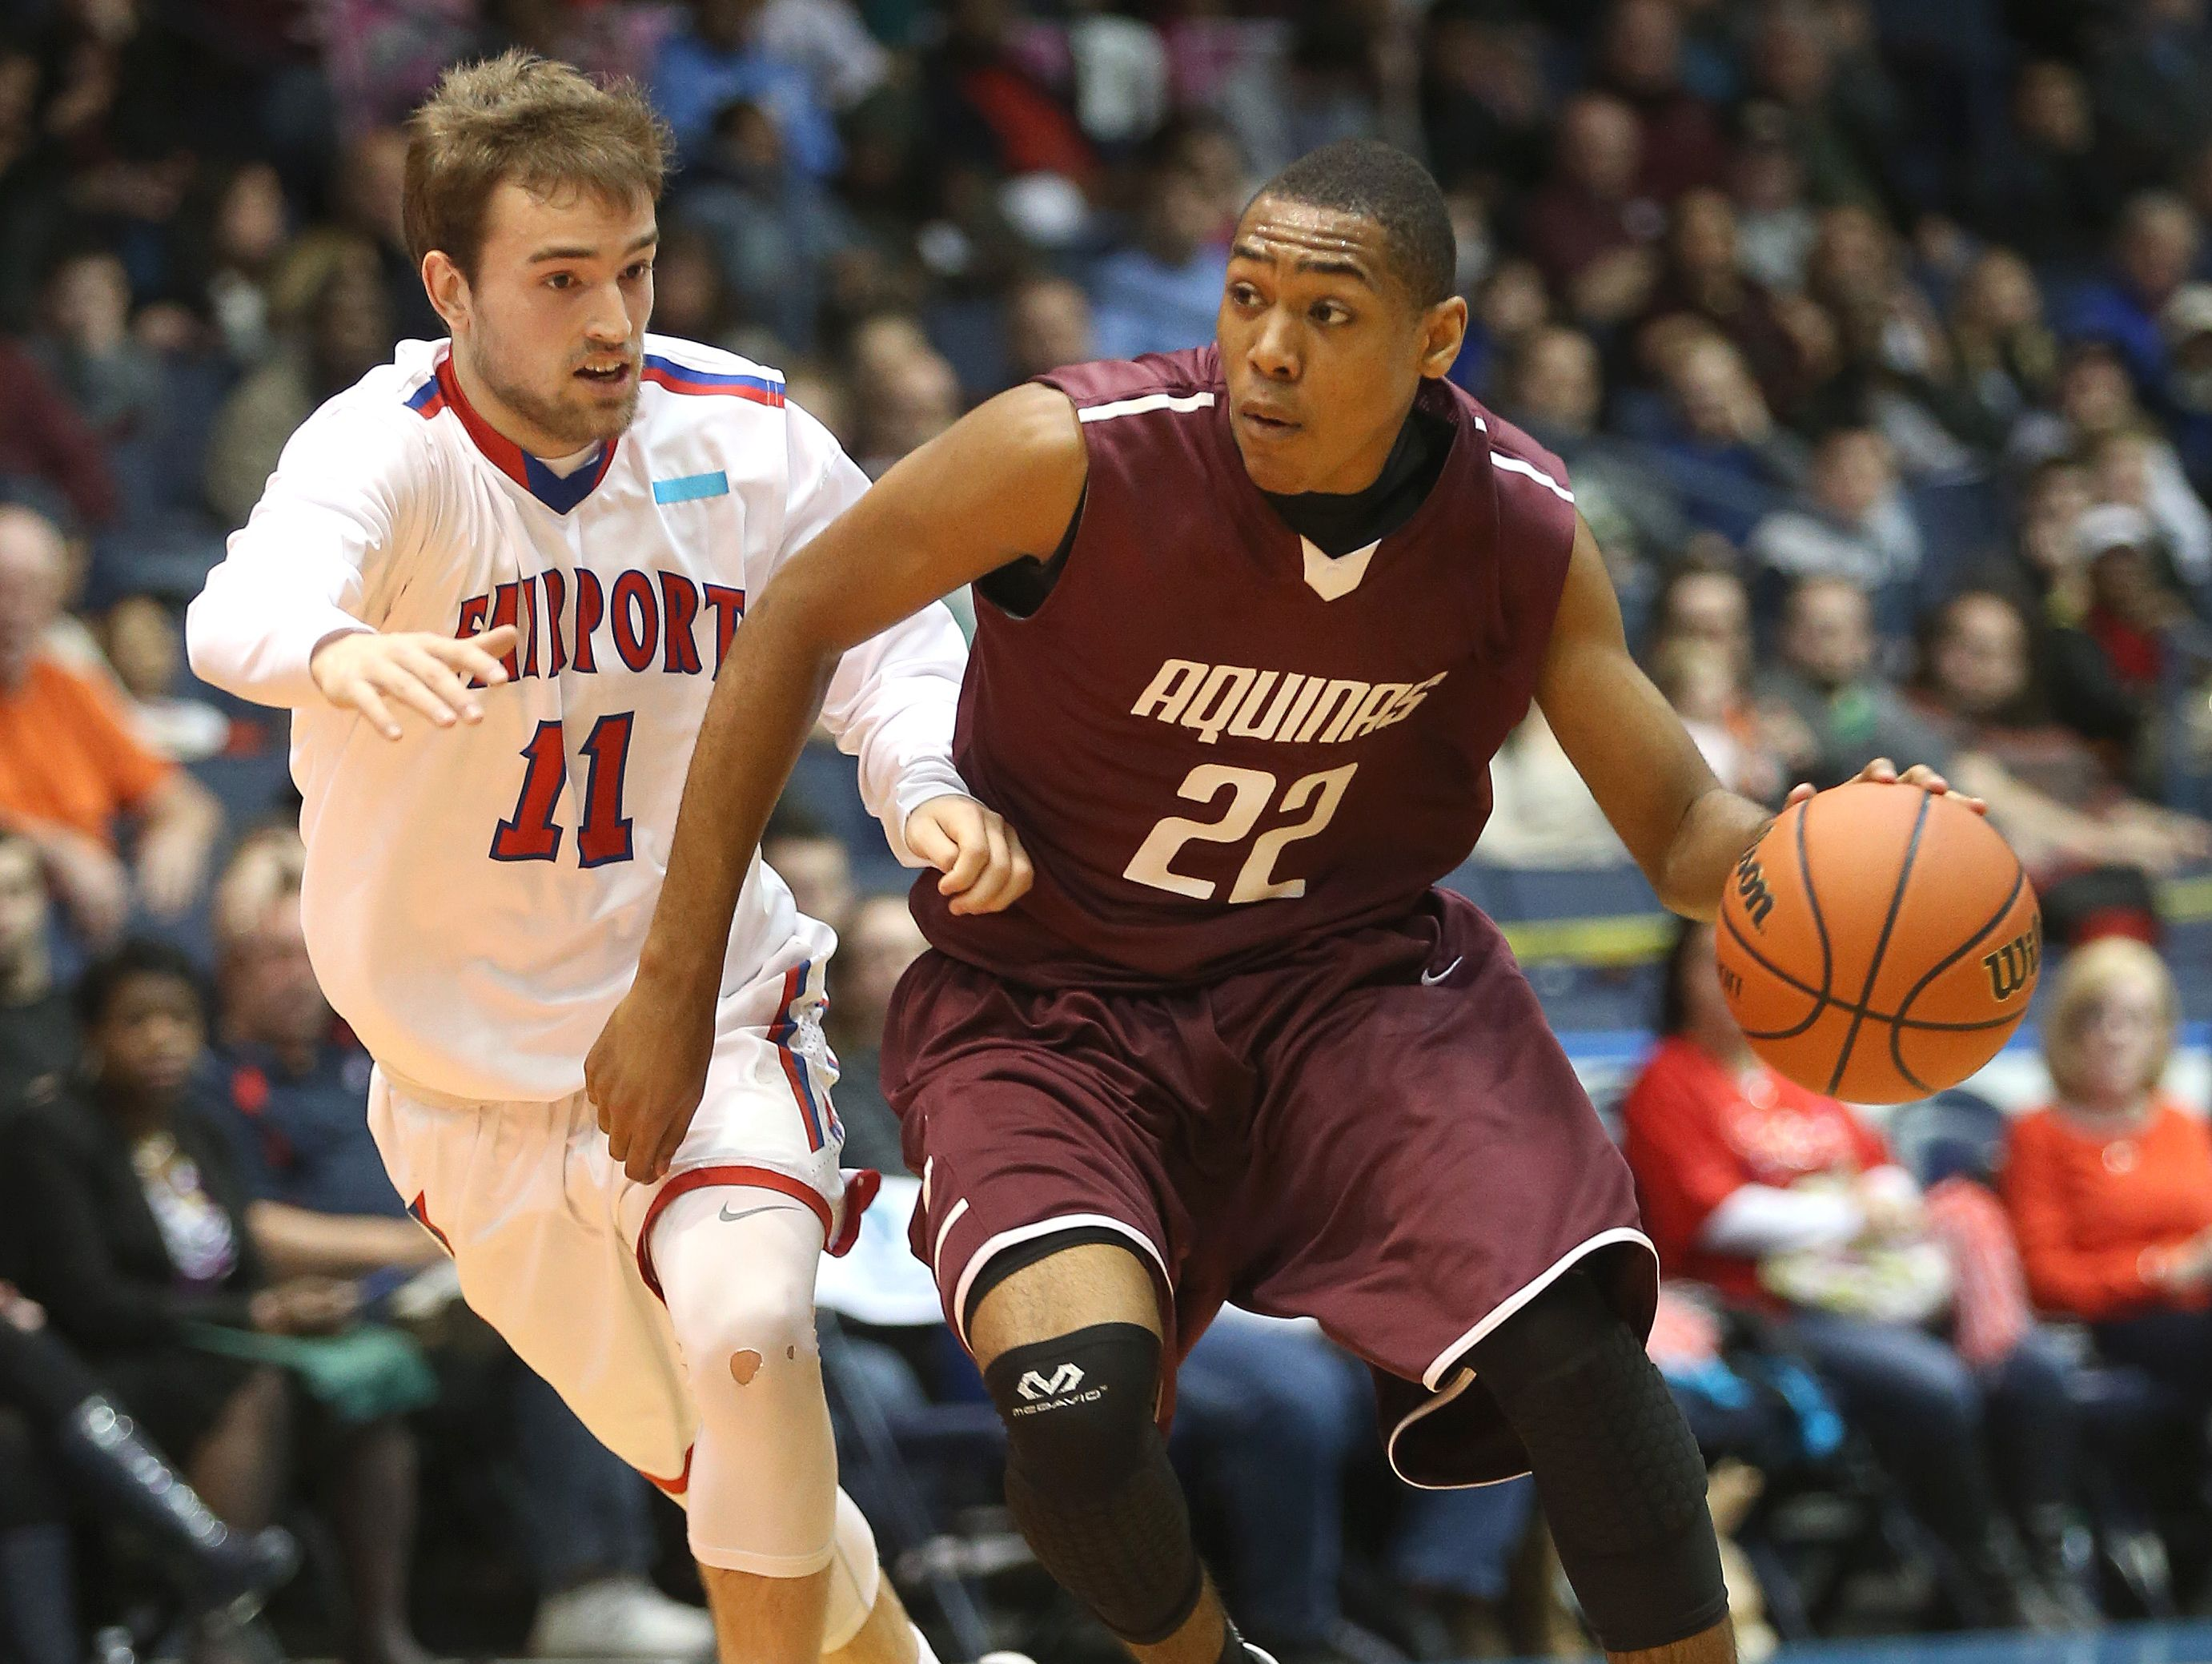 Aquinas junior guard Jalen Pickett (22) is guarded by Fairport's Nick Lapp in the Section V Class A final.